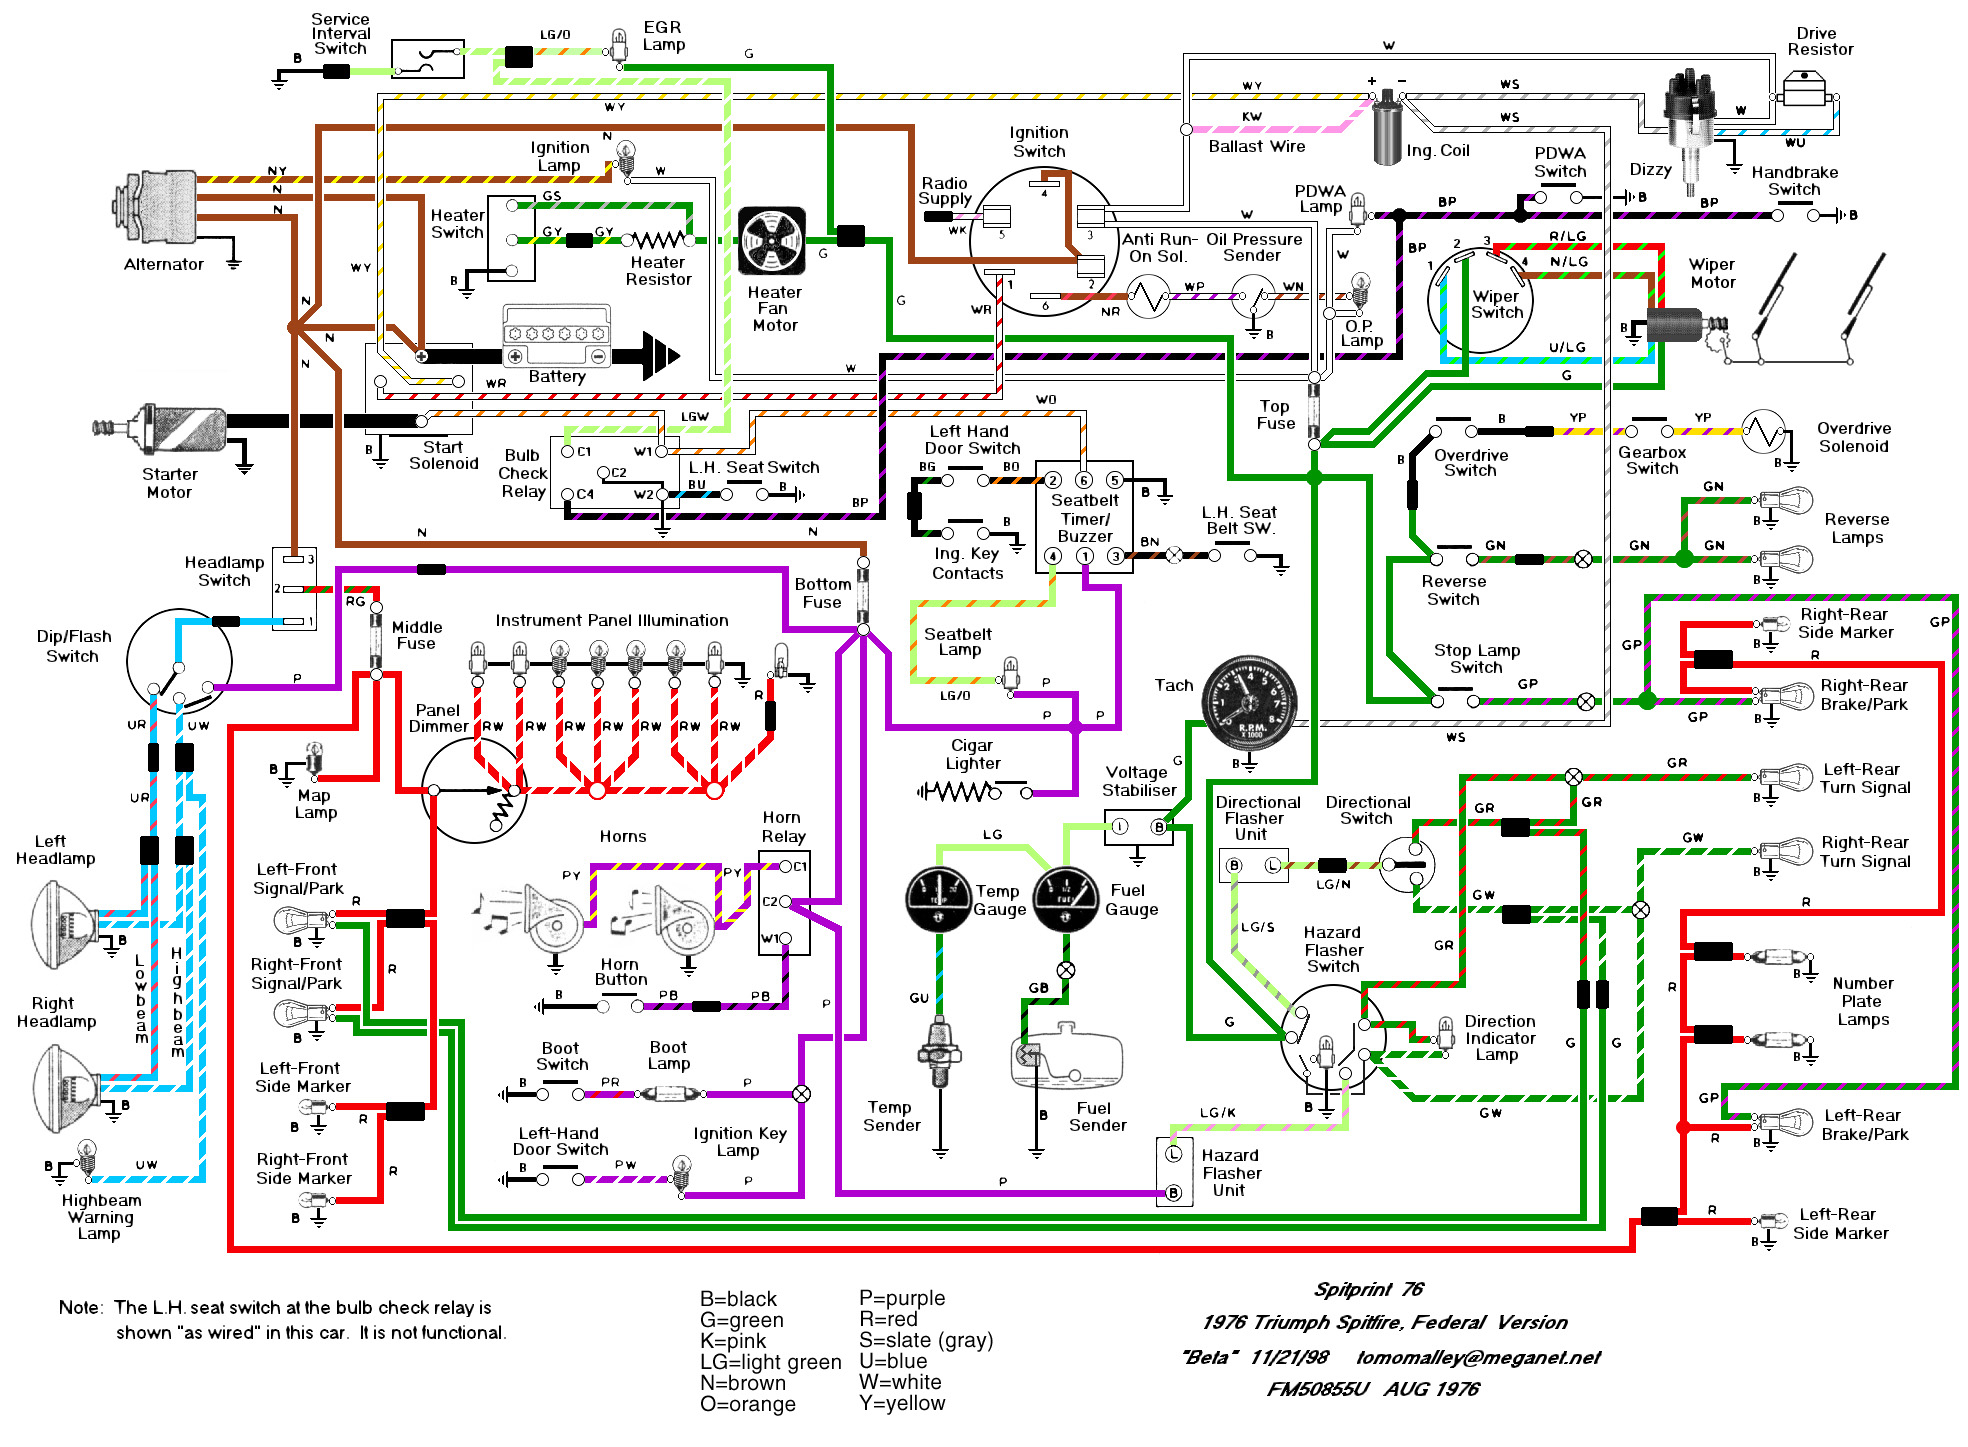 76diagram wiring schematics and diagrams triumph spitfire, gt6, herald electrical wiring diagrams for cars at gsmx.co